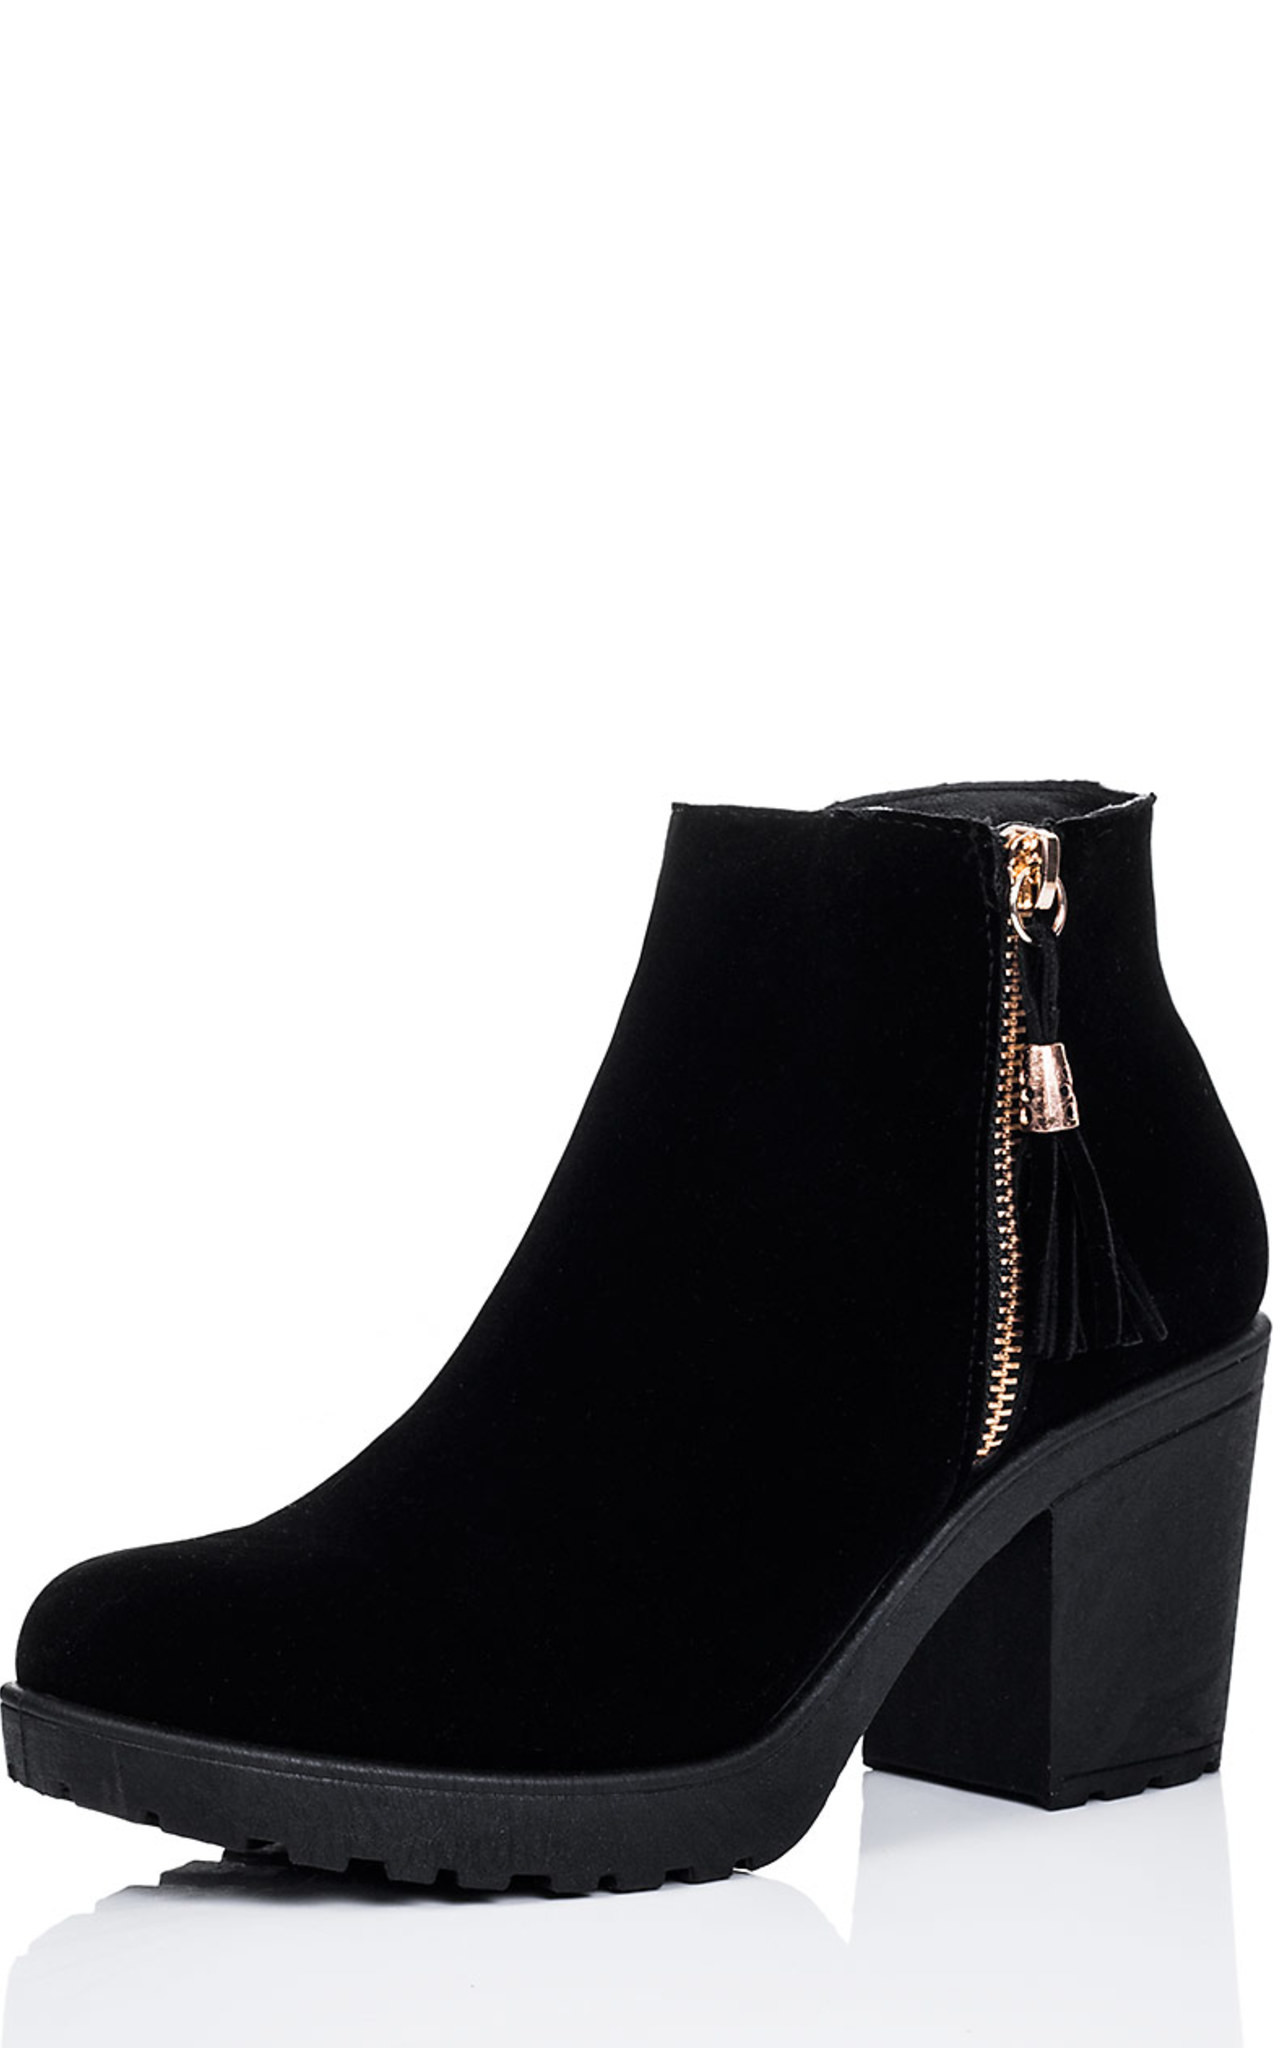 25e778a0d4f8 xlarge heeled-cleated-sole-zip-ankle-boots-spylovebuy-l871-black-suede-1.jpg